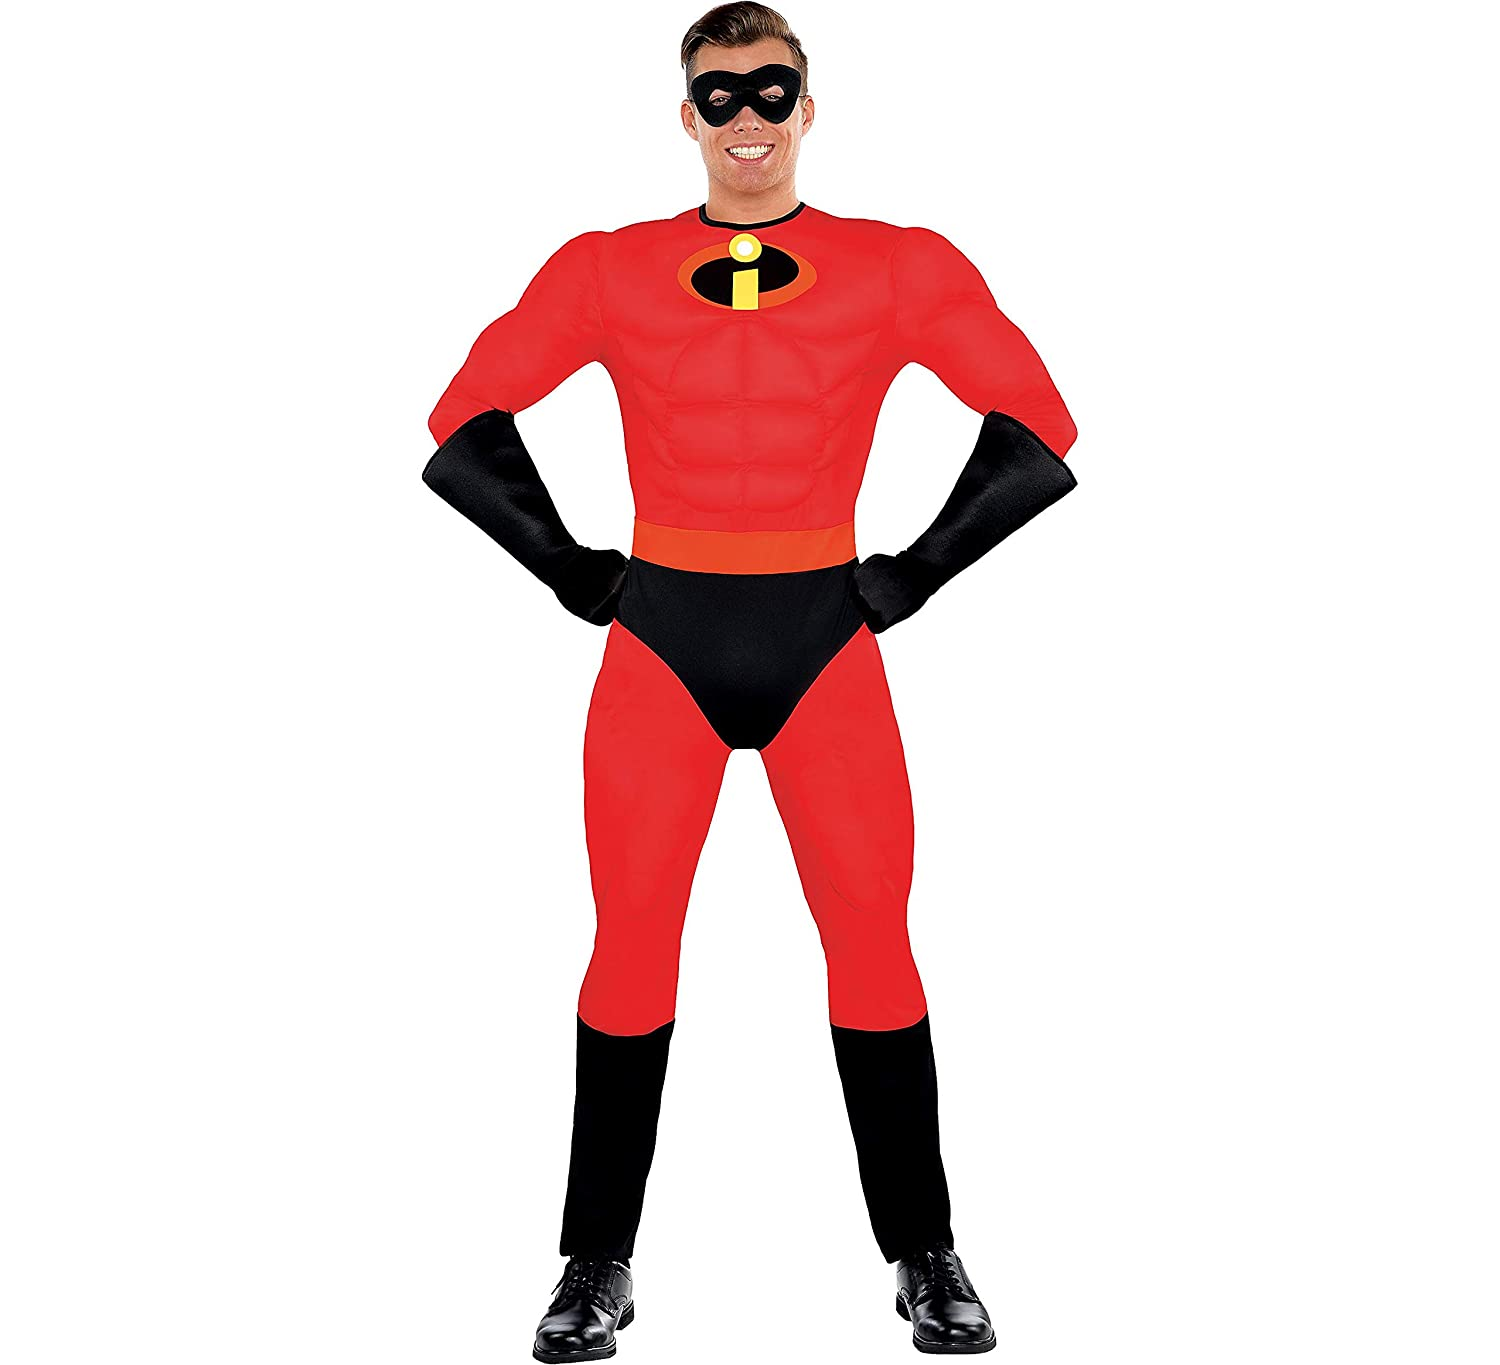 Party City The Incredibles Mr. Incredible Muscle Halloween Costume for Men, Standard, with Included Accessories